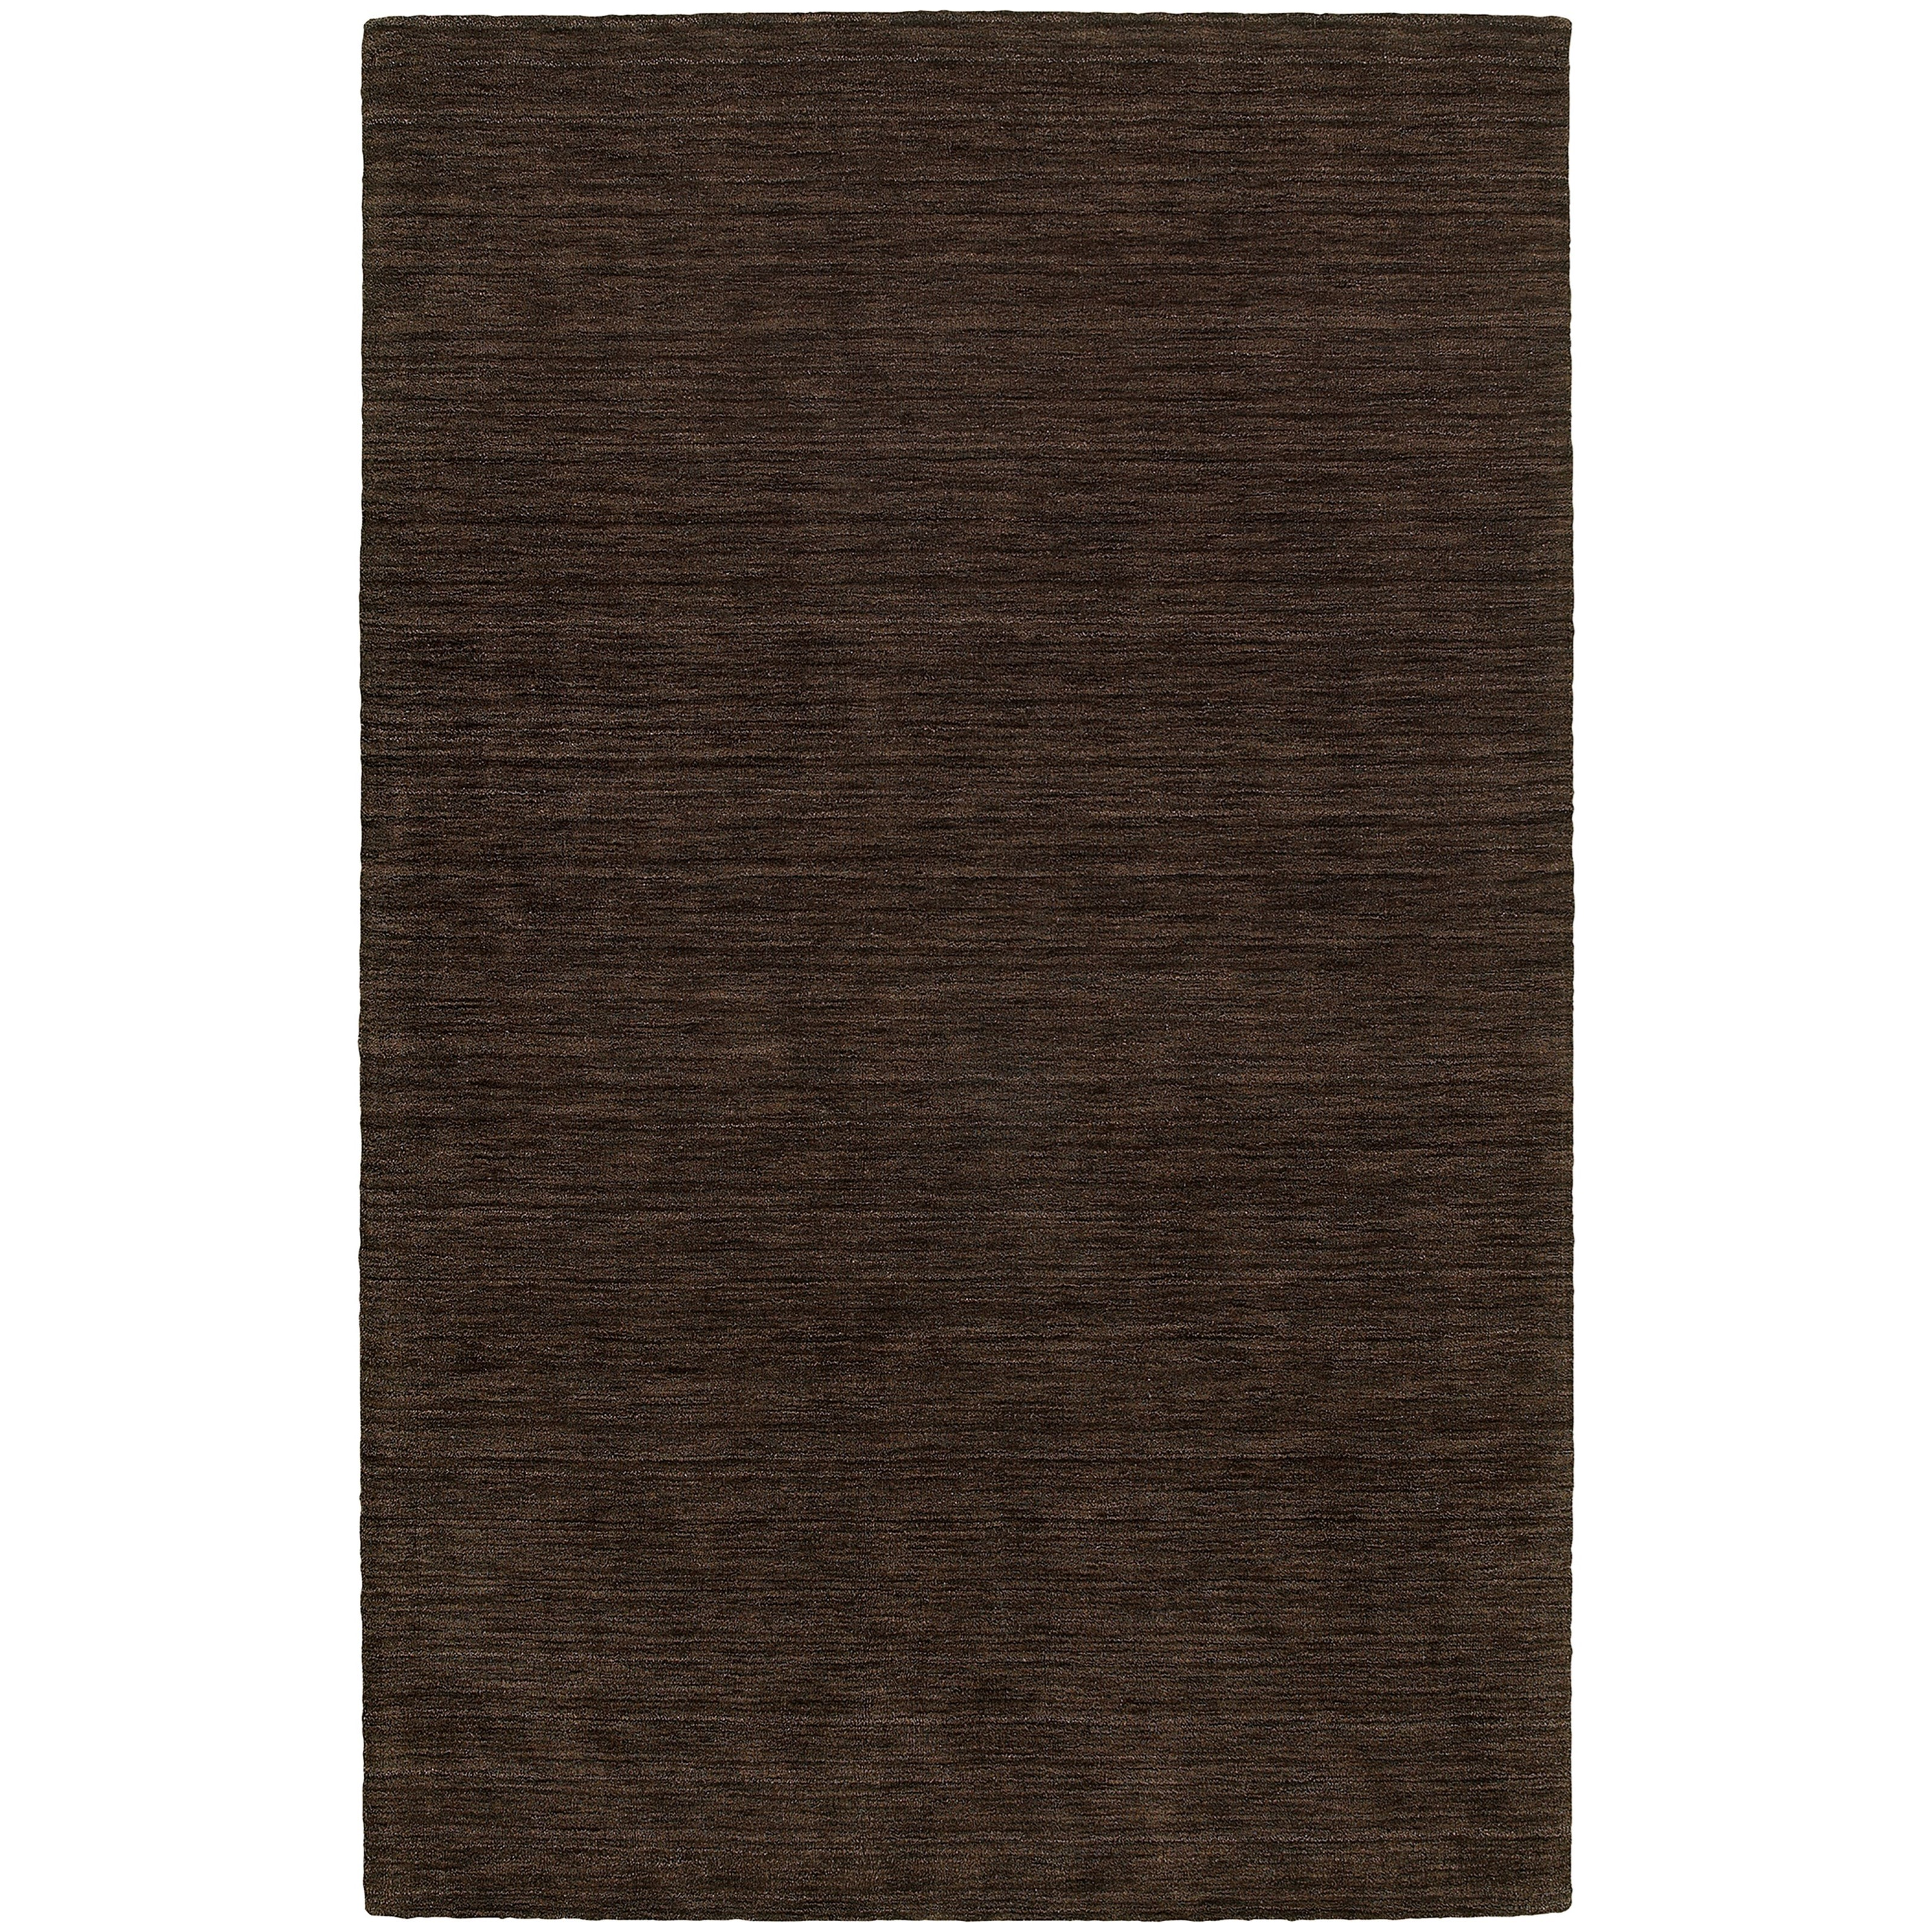 "Aniston 8' 0"" X 10' 0"" Rectangle Area Rug by Oriental Weavers at Steger's Furniture"